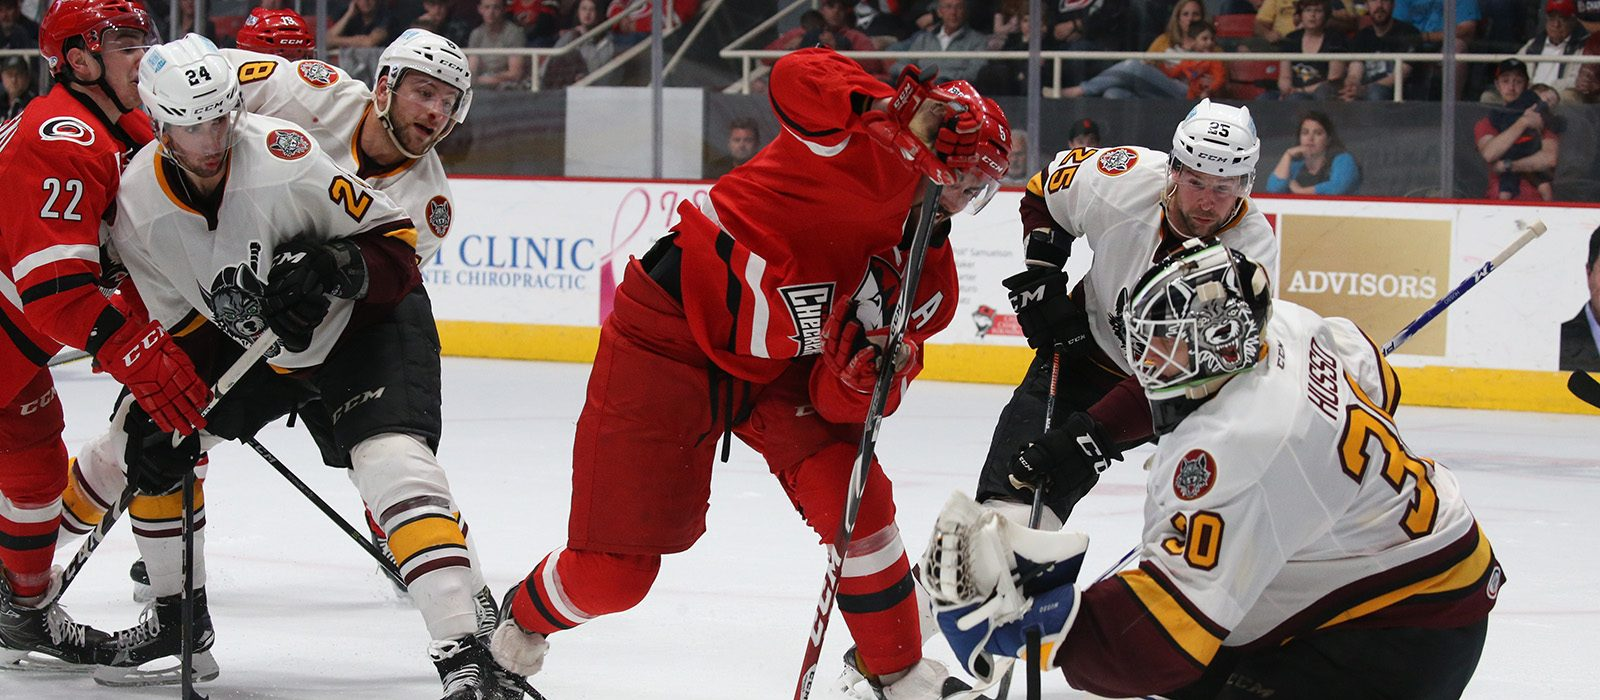 Chicago Wolves Game 2 Central Division Semifinals